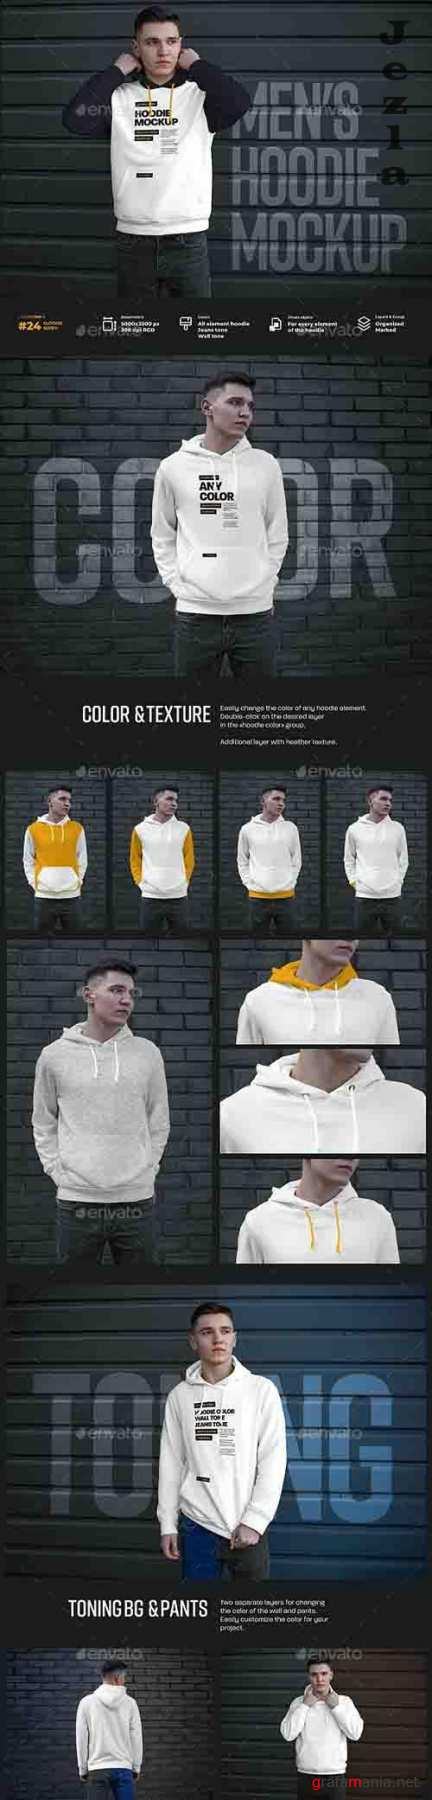 GraphicRiver - 7 Mockups Hoodie on the Man. Urban Style 30321874